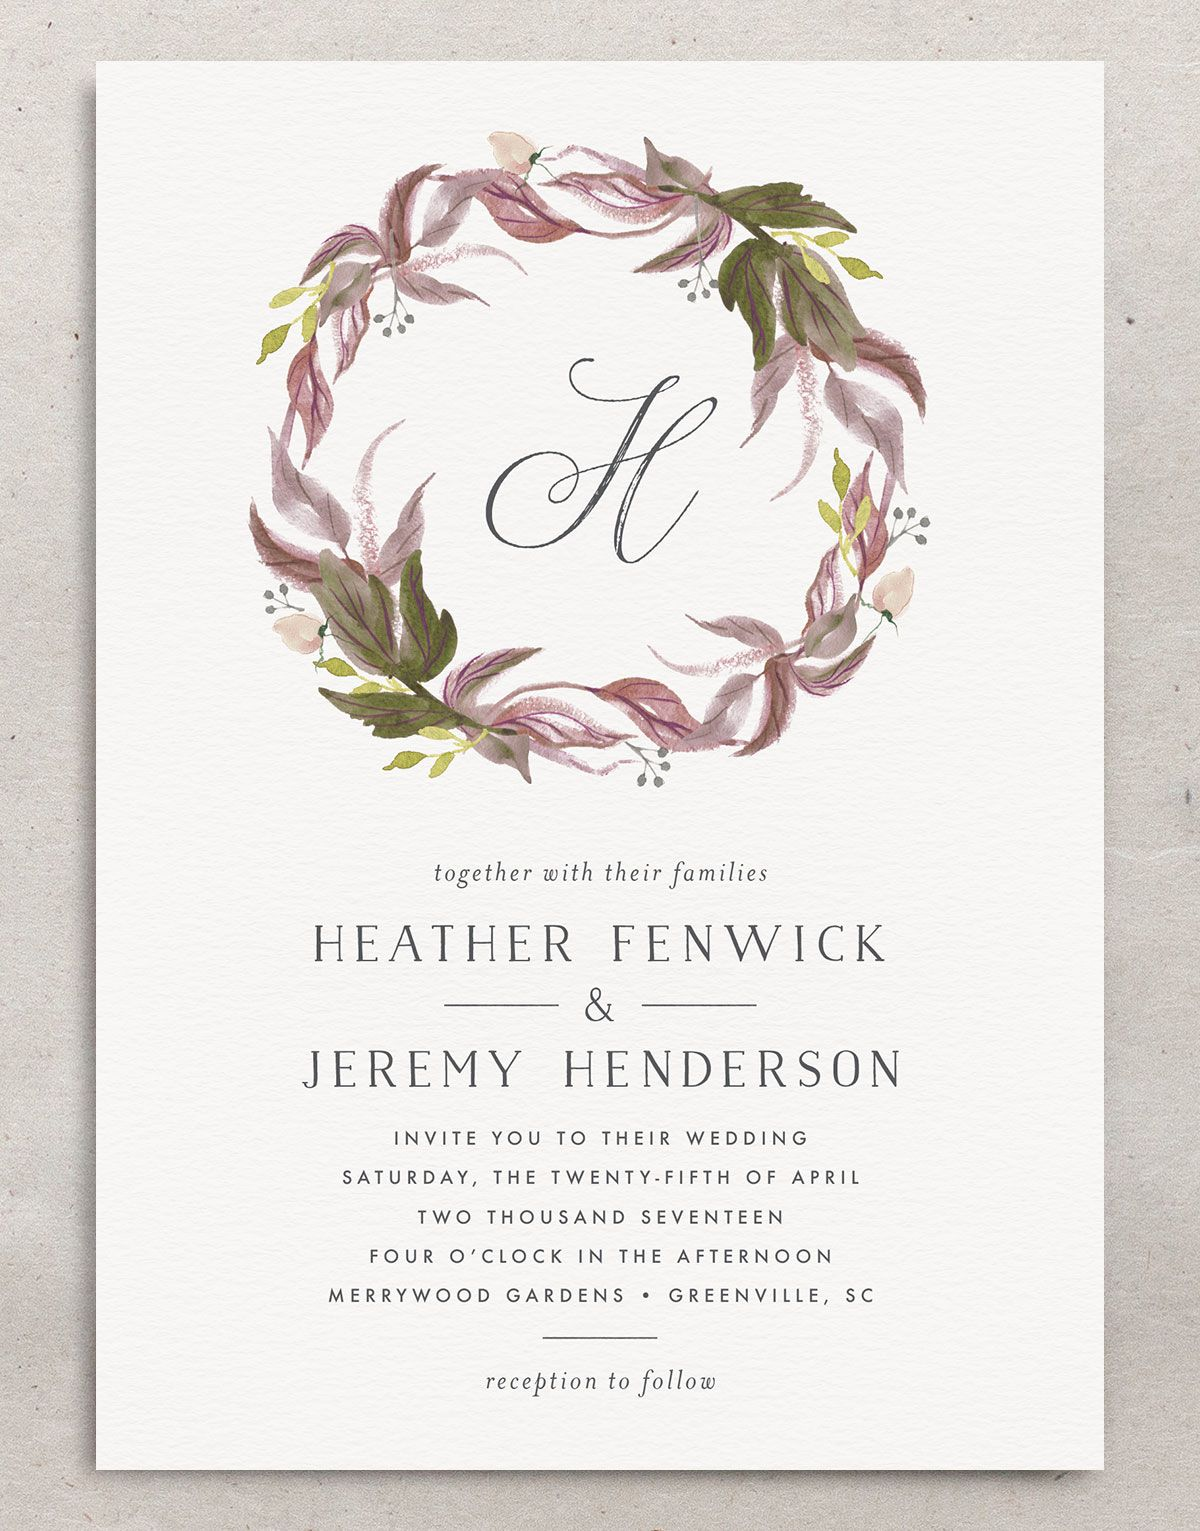 leafy wreath monogram wedding invitation in purple